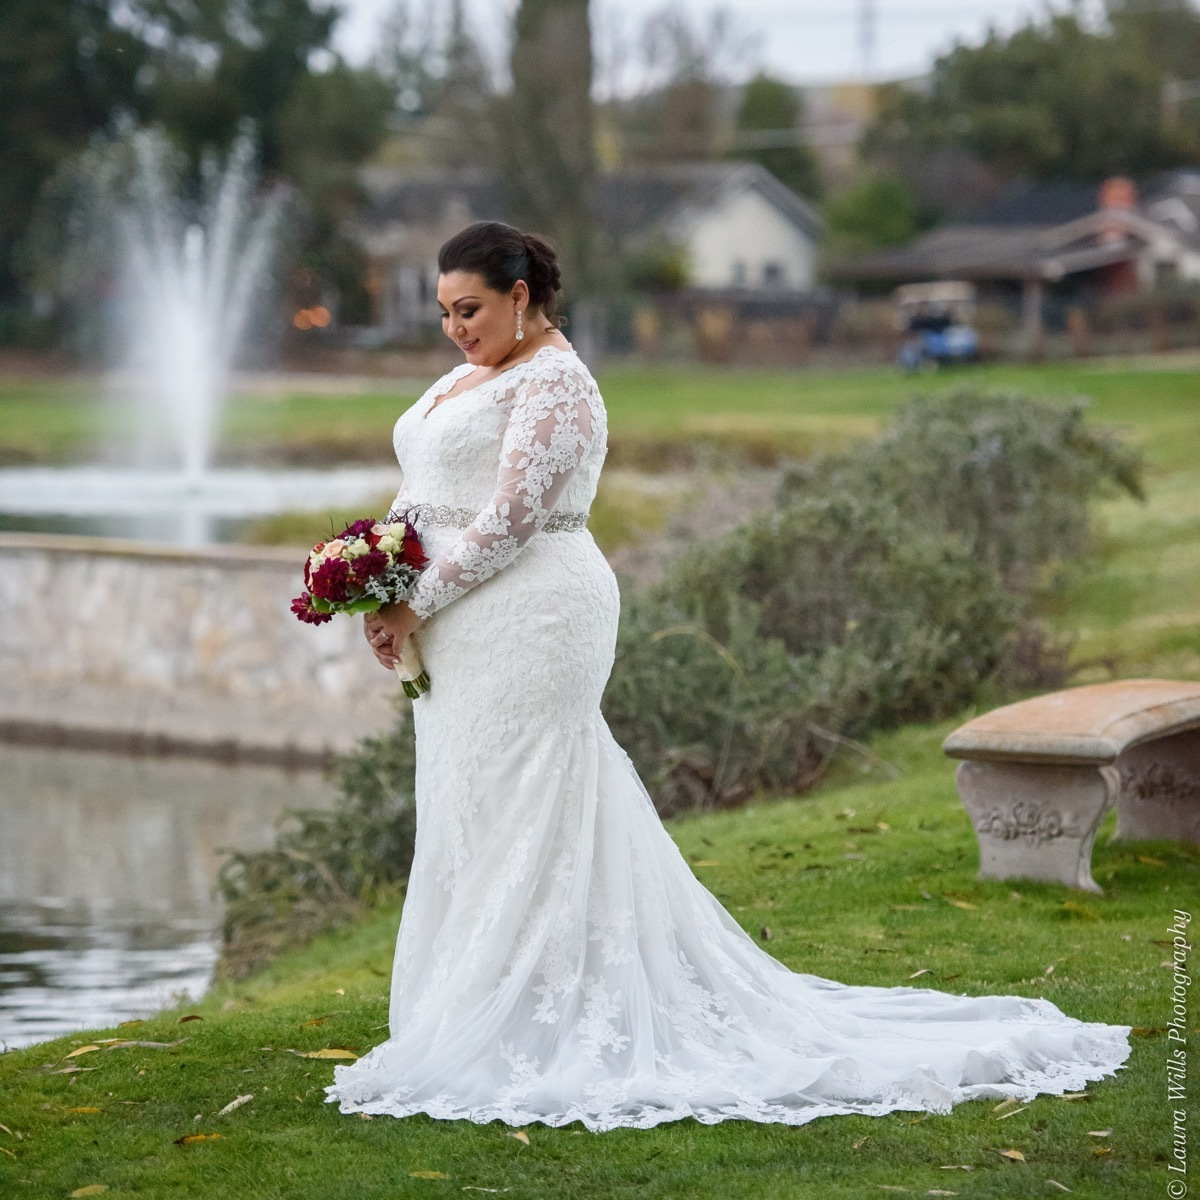 Anomalie long sleeve fit and flare custom wedding dress on plus size bride with scalloped hem, floral lace, and beaded belt